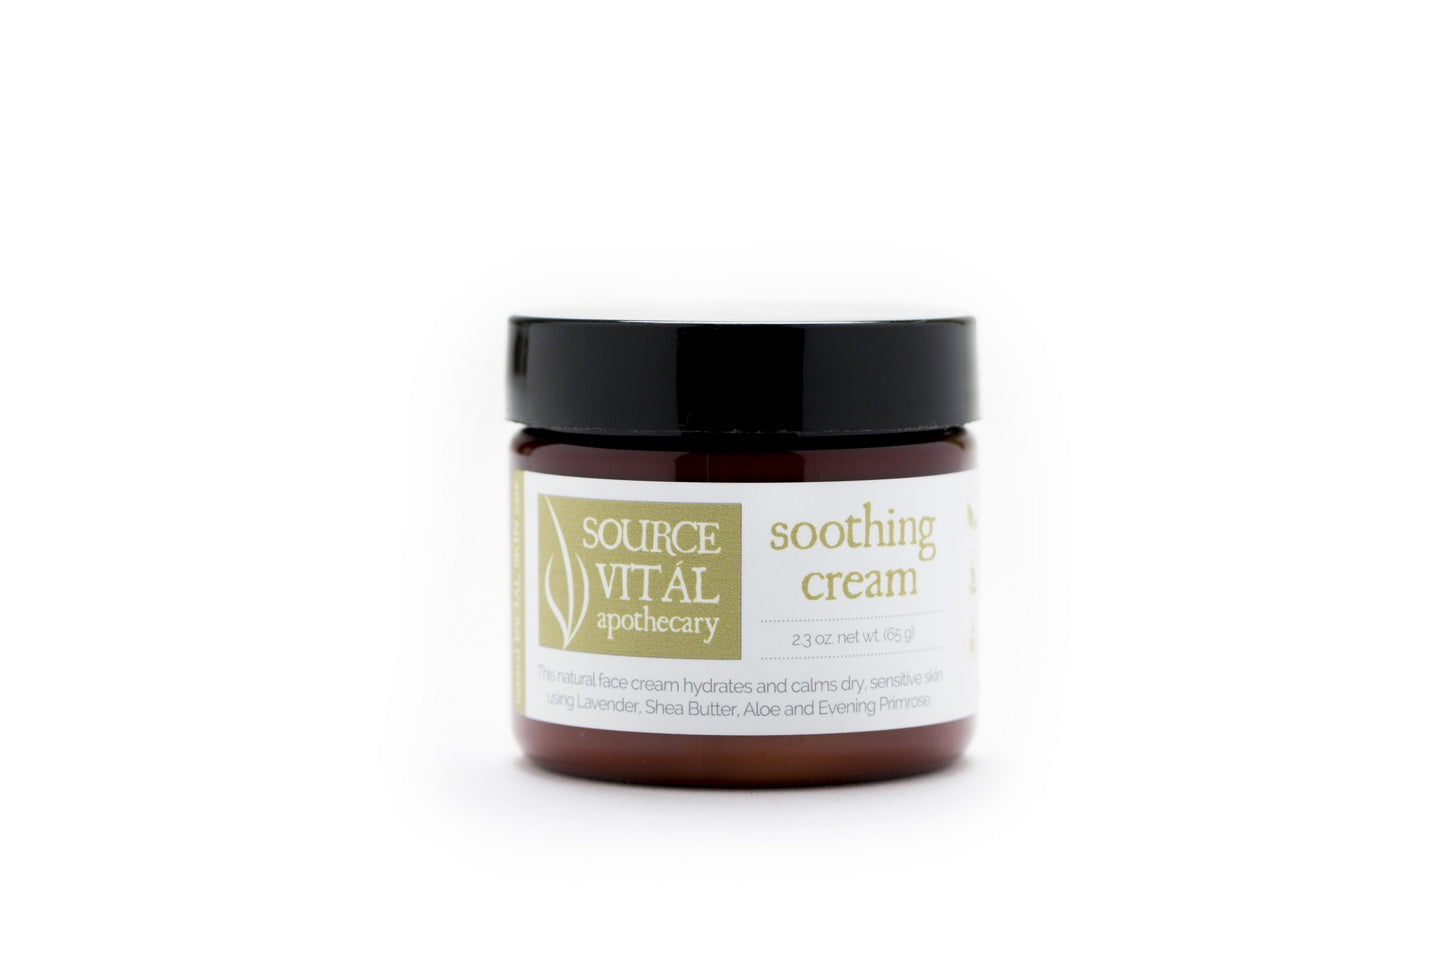 Source Vital Soothing Cream - Switch 2 Pure